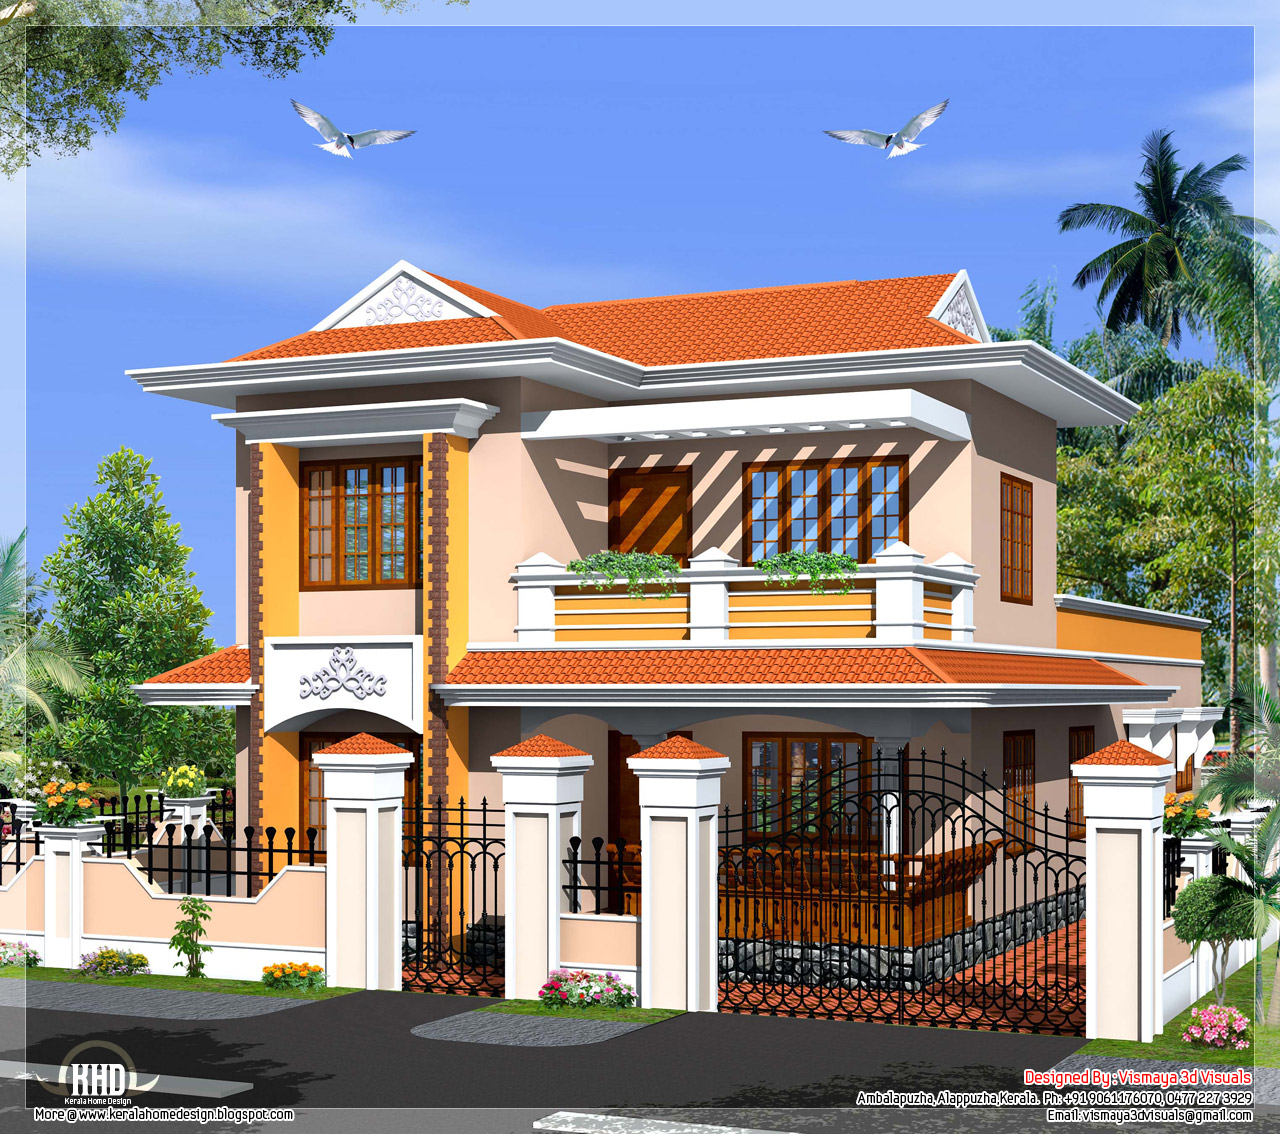 Kerala model villa in 2110 in square feet house design plans for New house plans kerala model